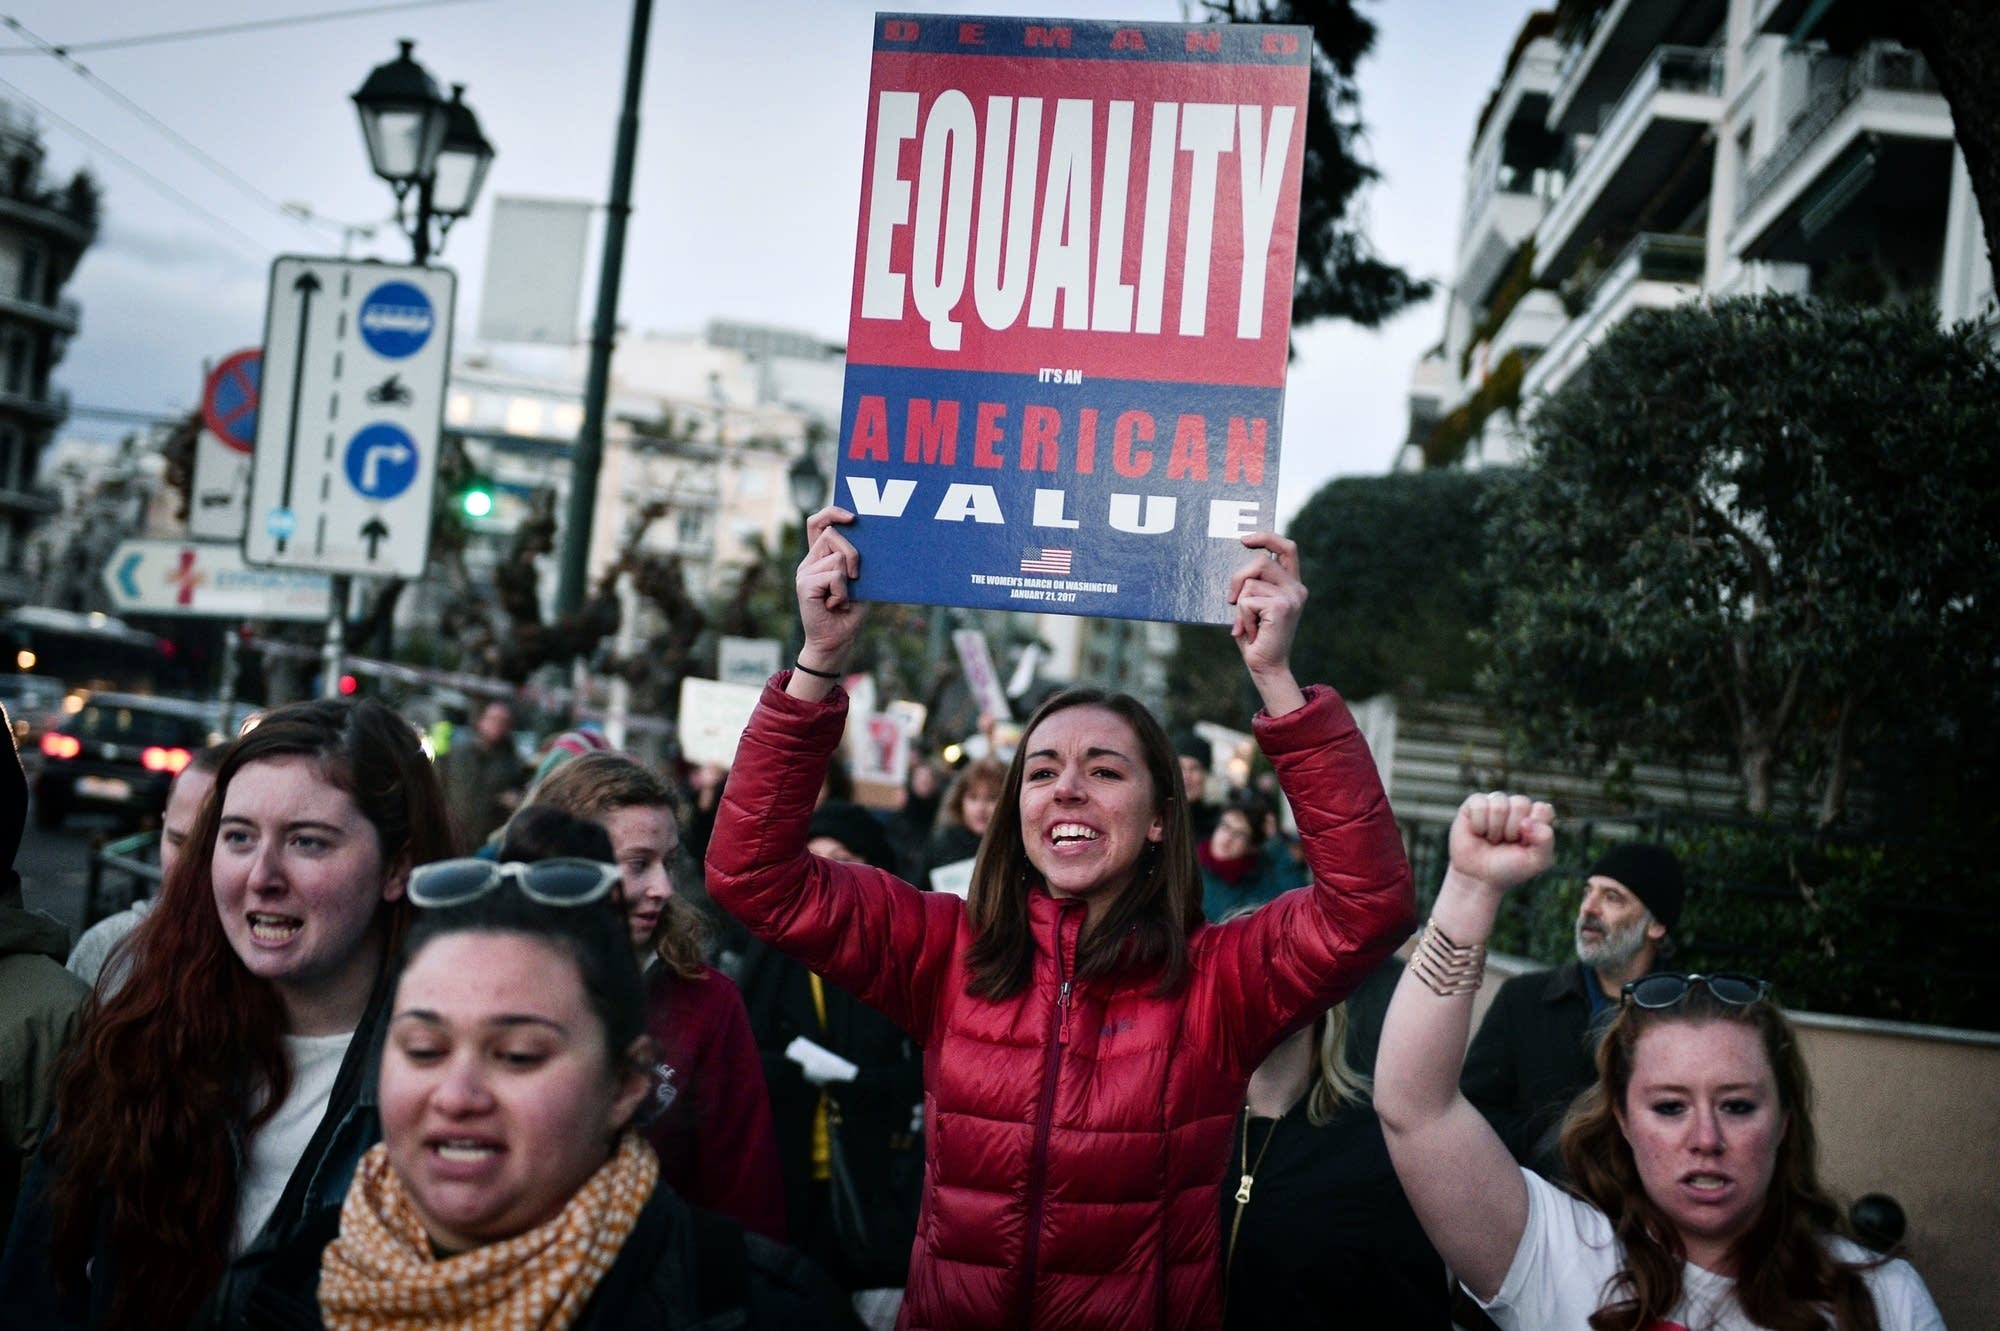 Athens, Greece: Demonstrators hold placards and chant slogans.